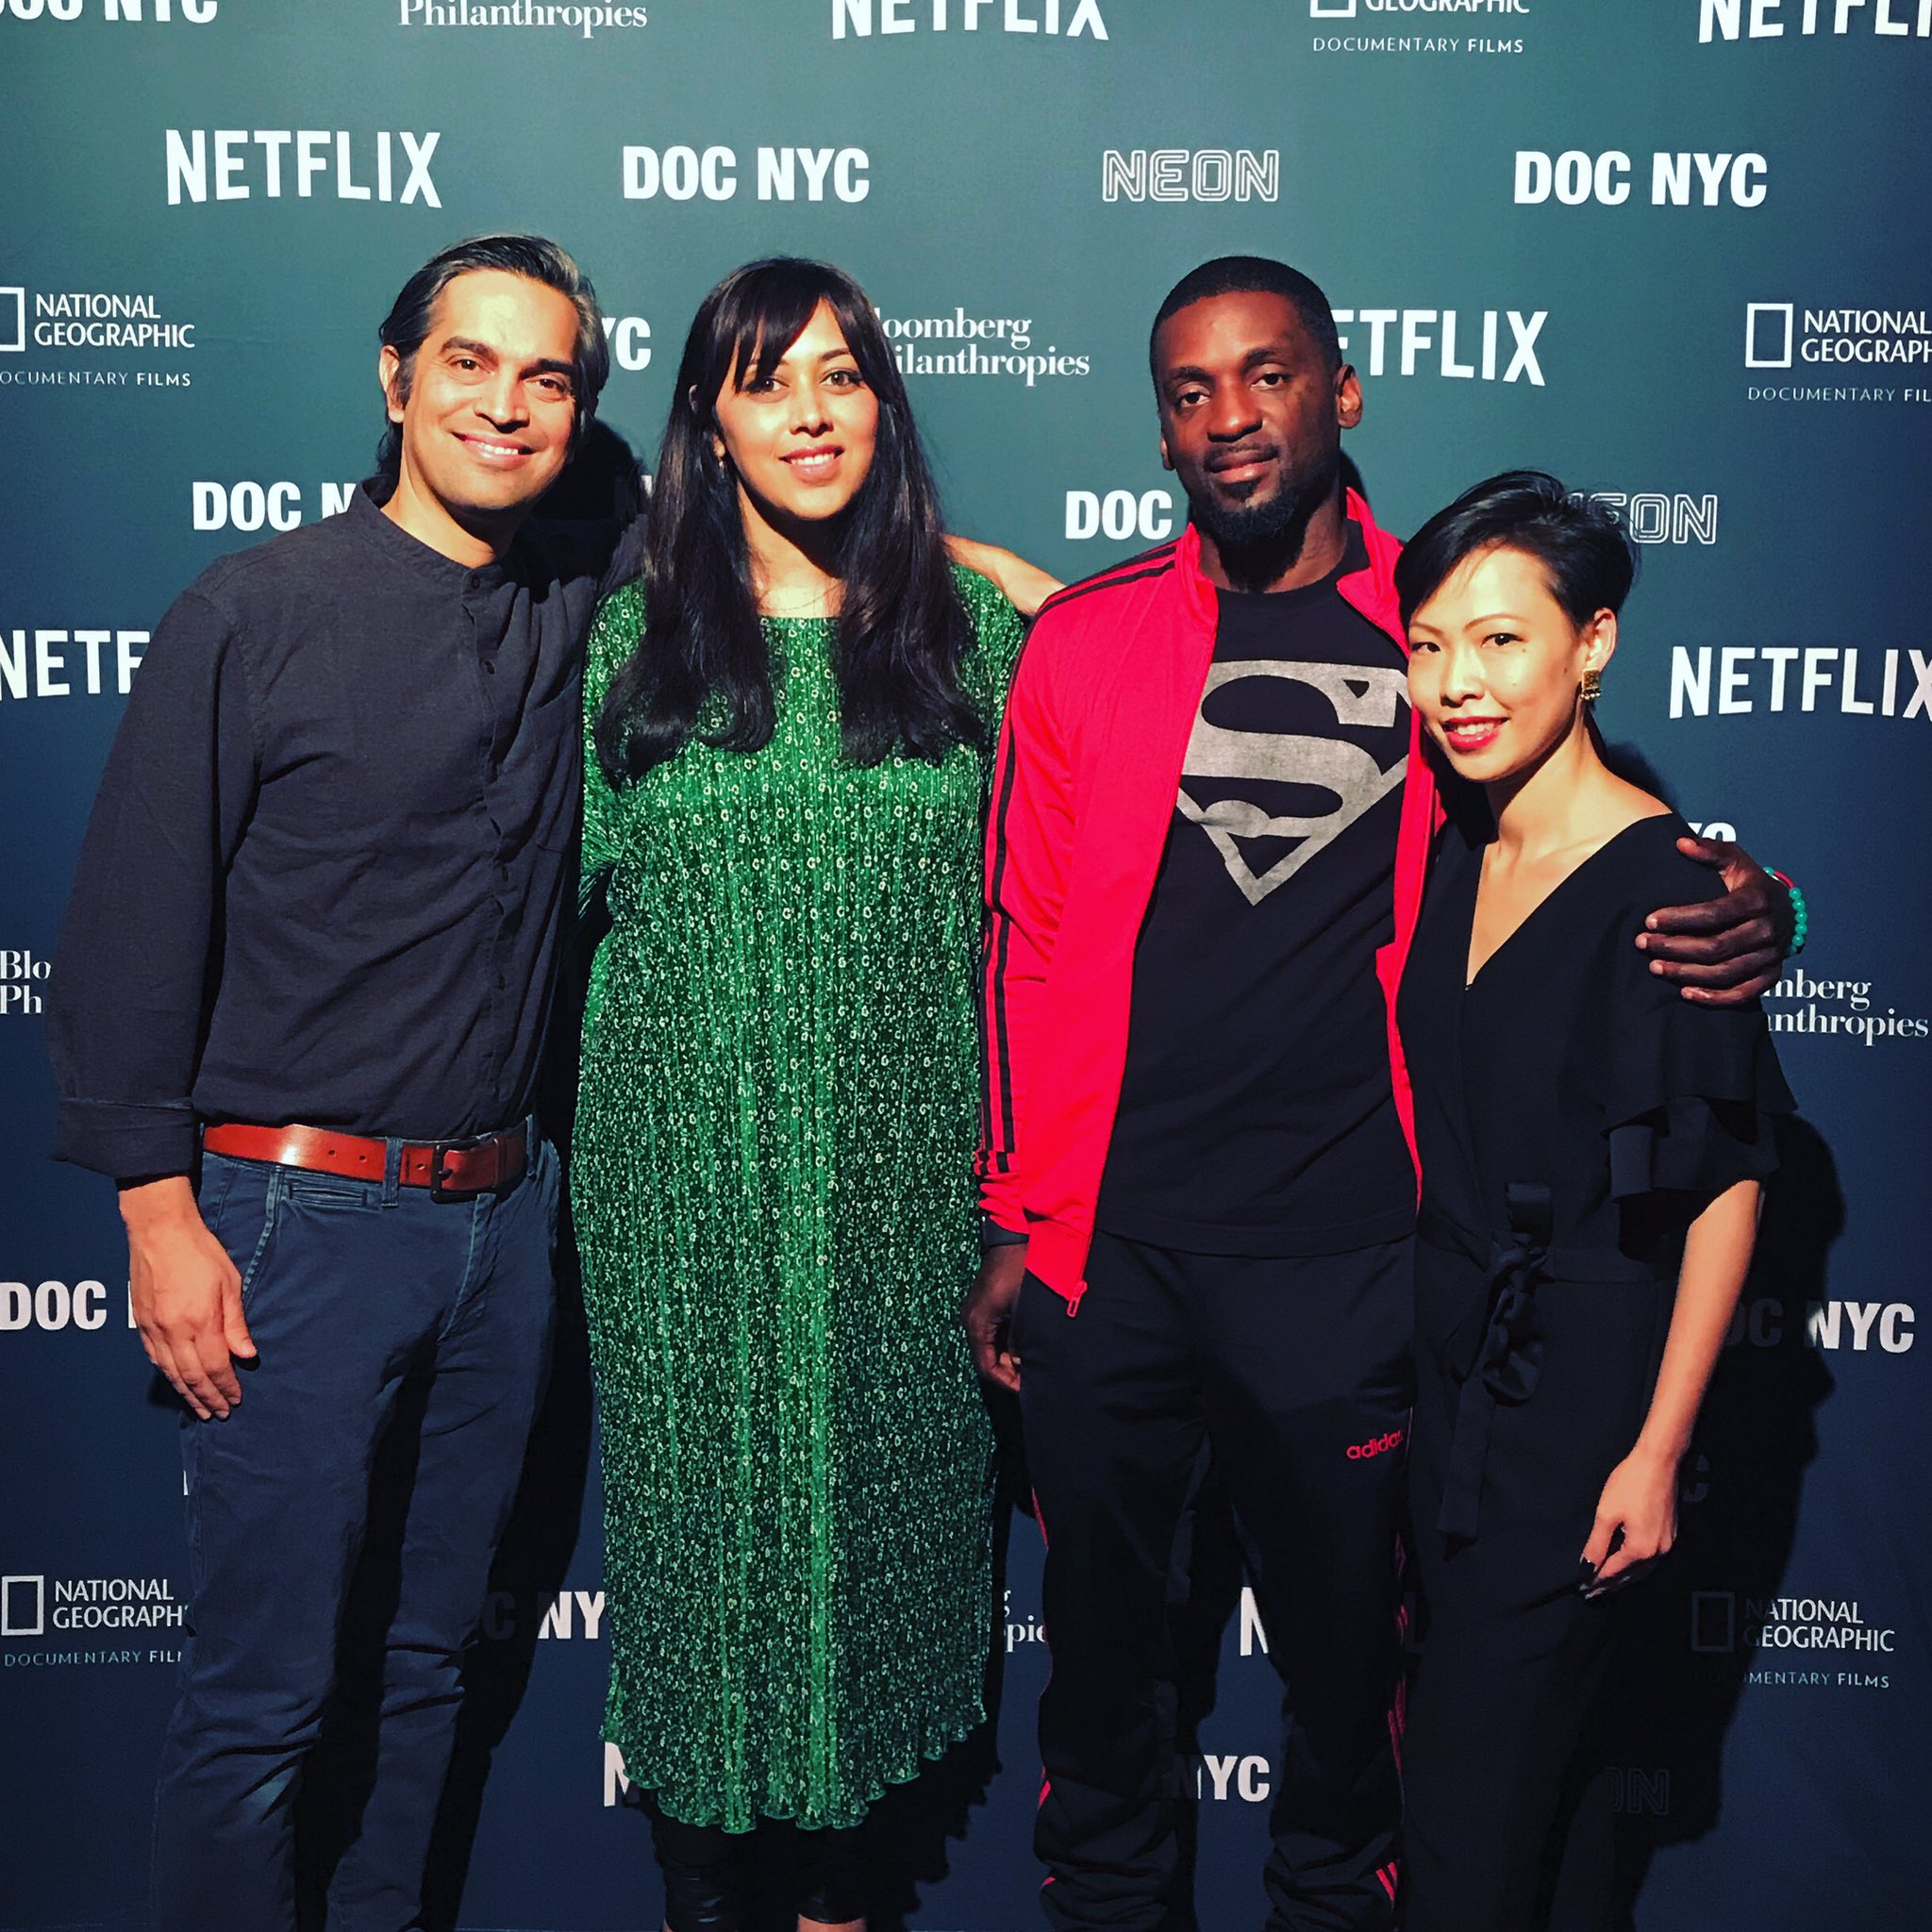 Indian-American filmmakers Sami Khan (extreme left) and Smriti Mundhra (second from left) have received an Oscar nomination for their film St. Louis Superman, based on former Missouri Rep. Bruce Franks Jr. (second from right). Photo courtesy: Twitter/@pohsi